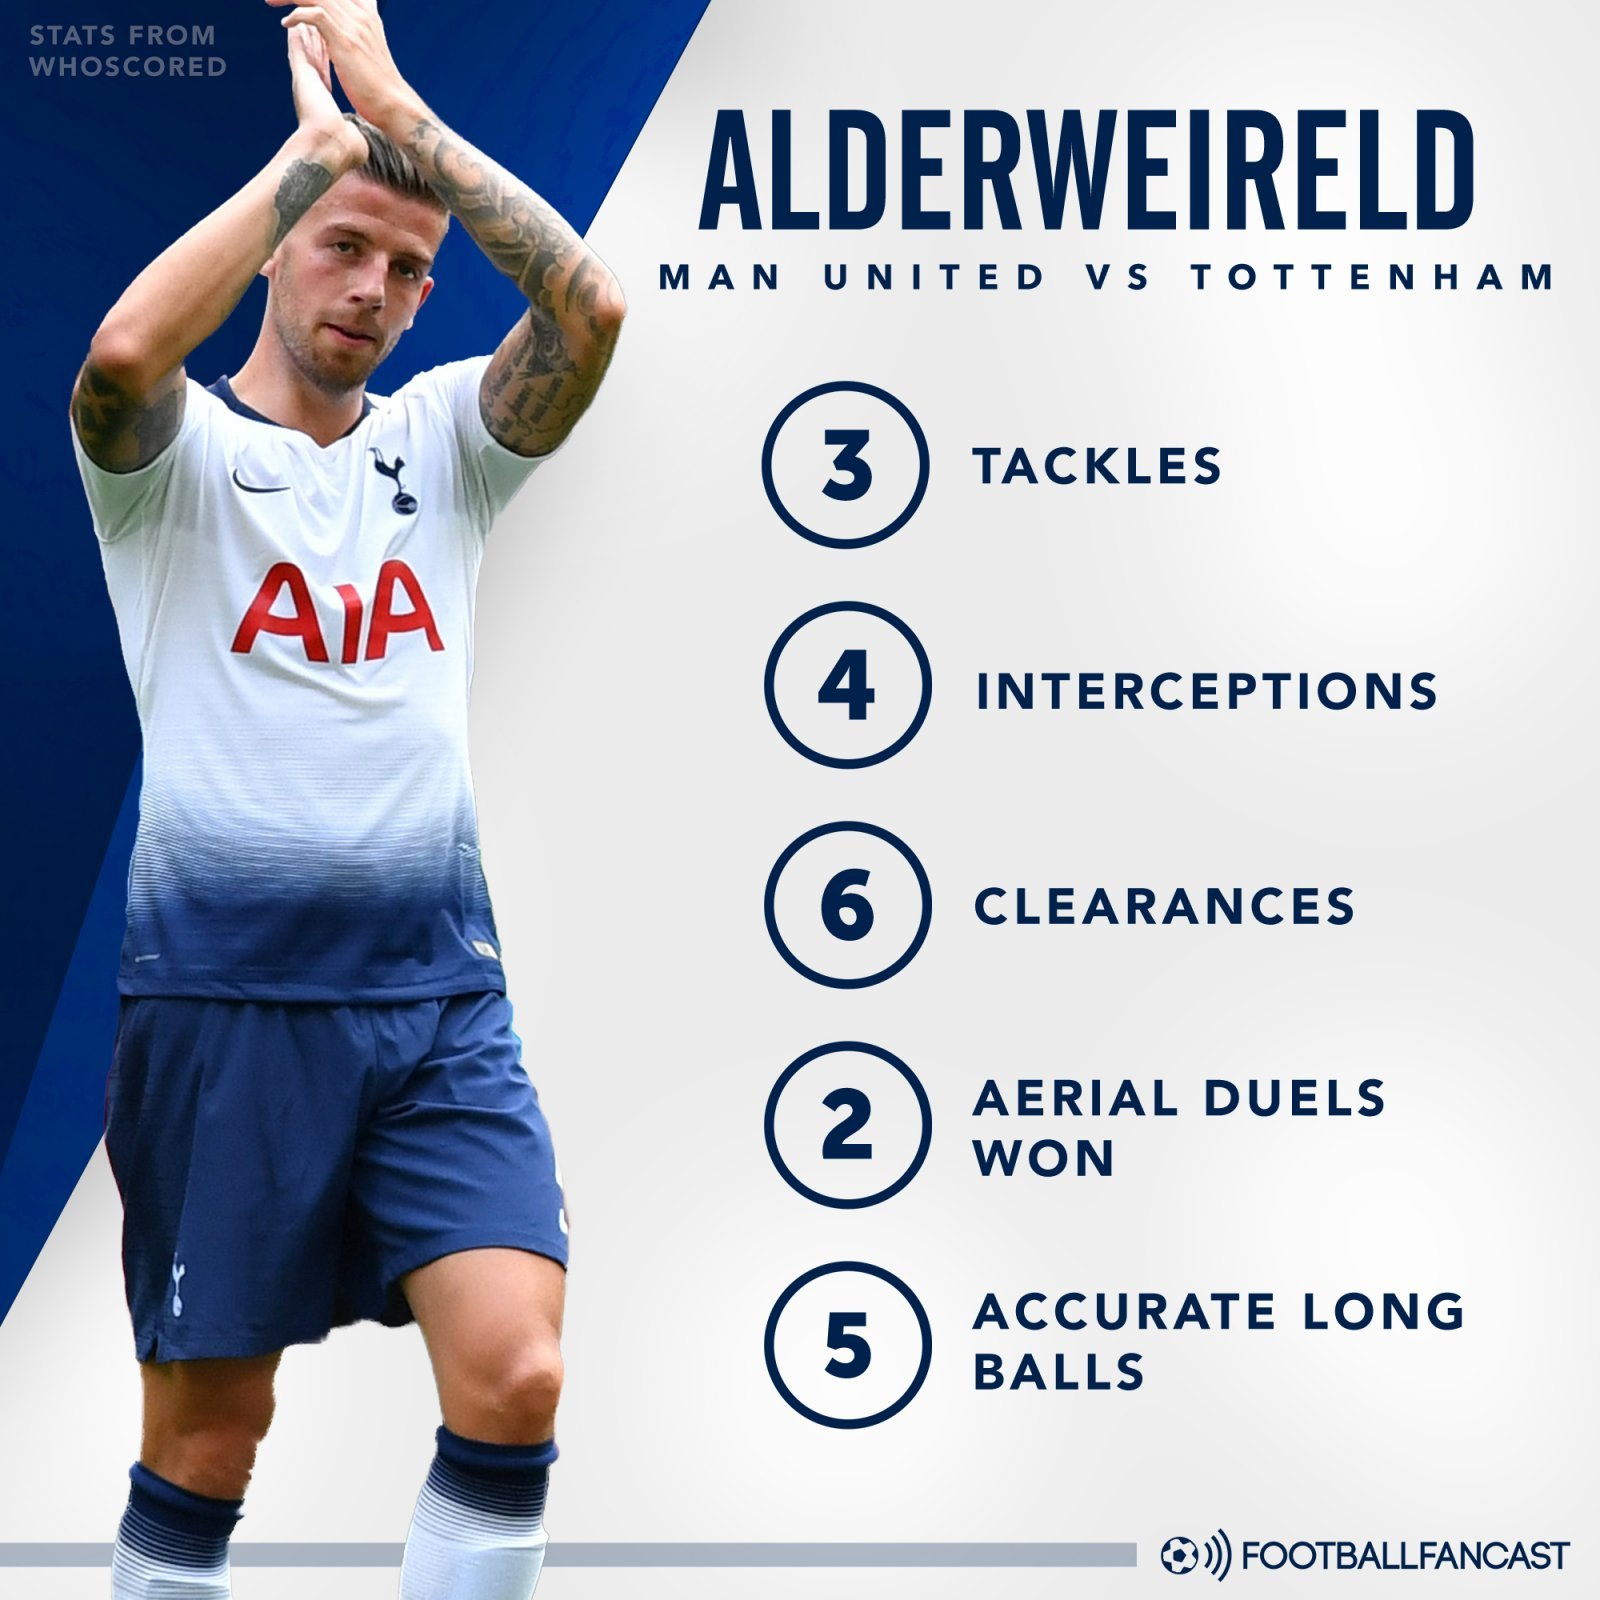 Toby Alderweireld's stats from Tottenham's win over Manchester United